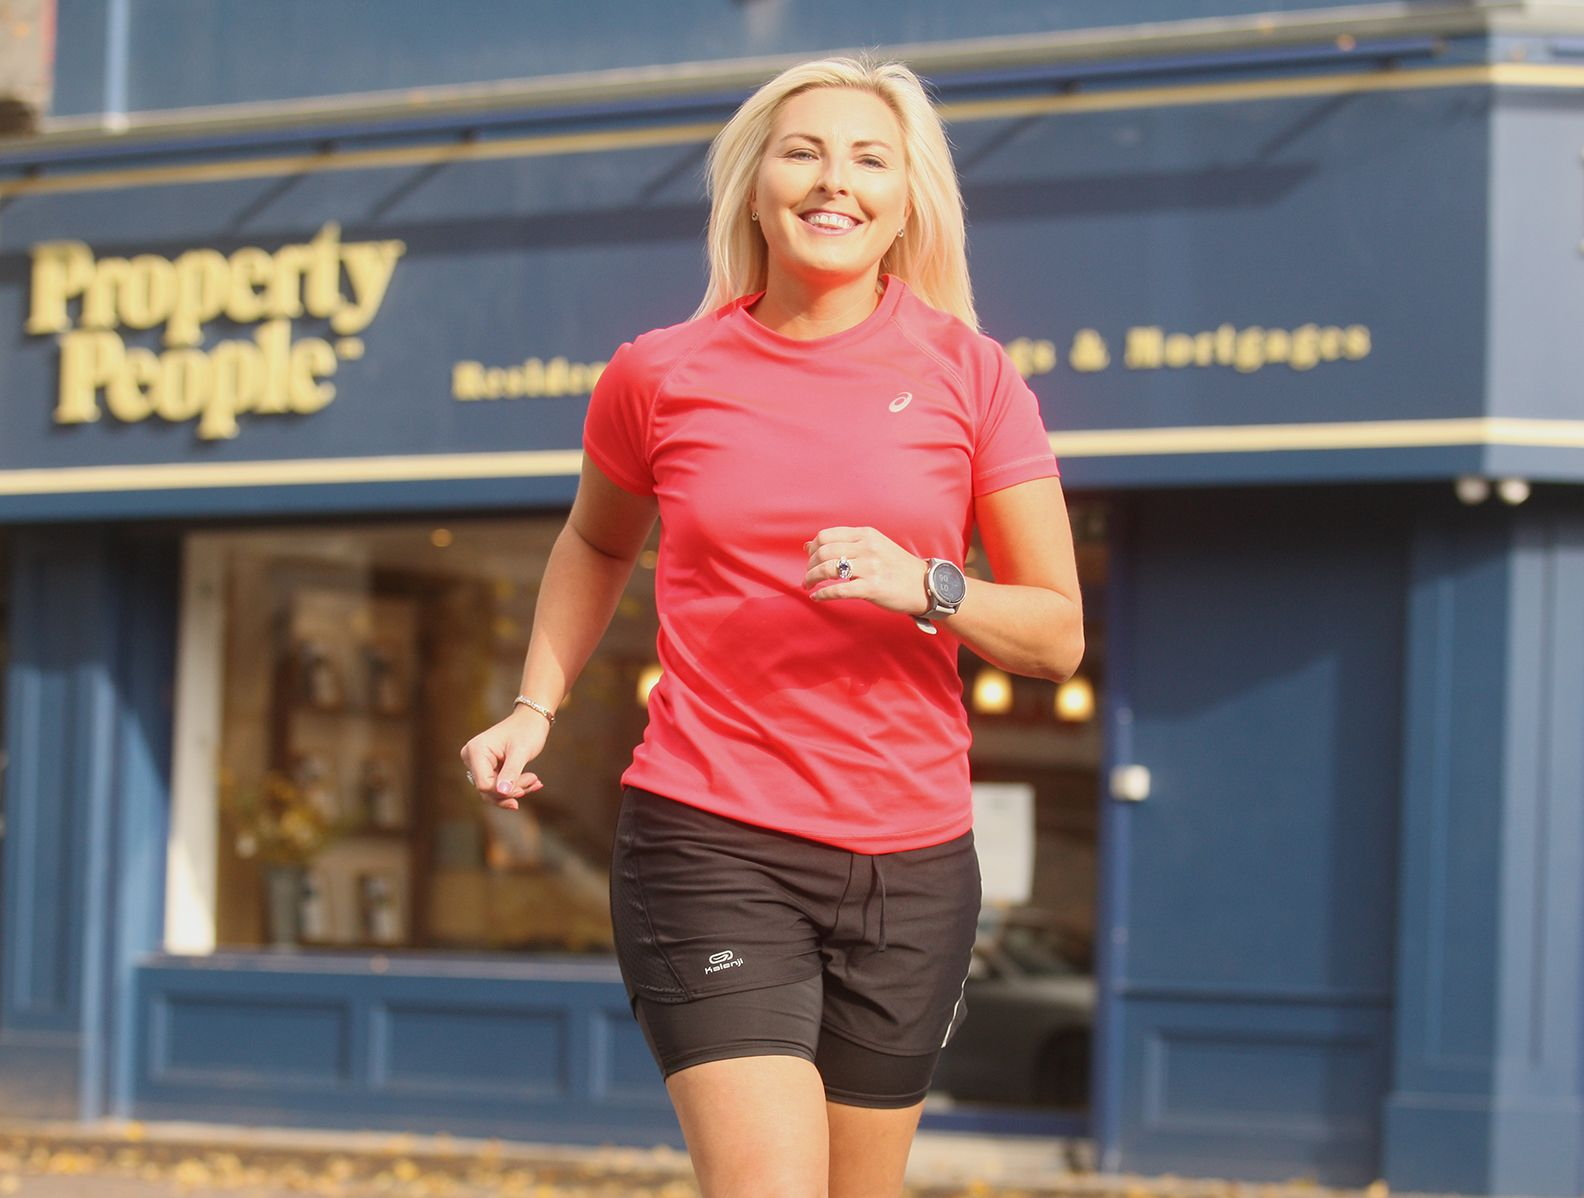 ON YOUR MARKS: Allison Steenson is getting ready for her charity run